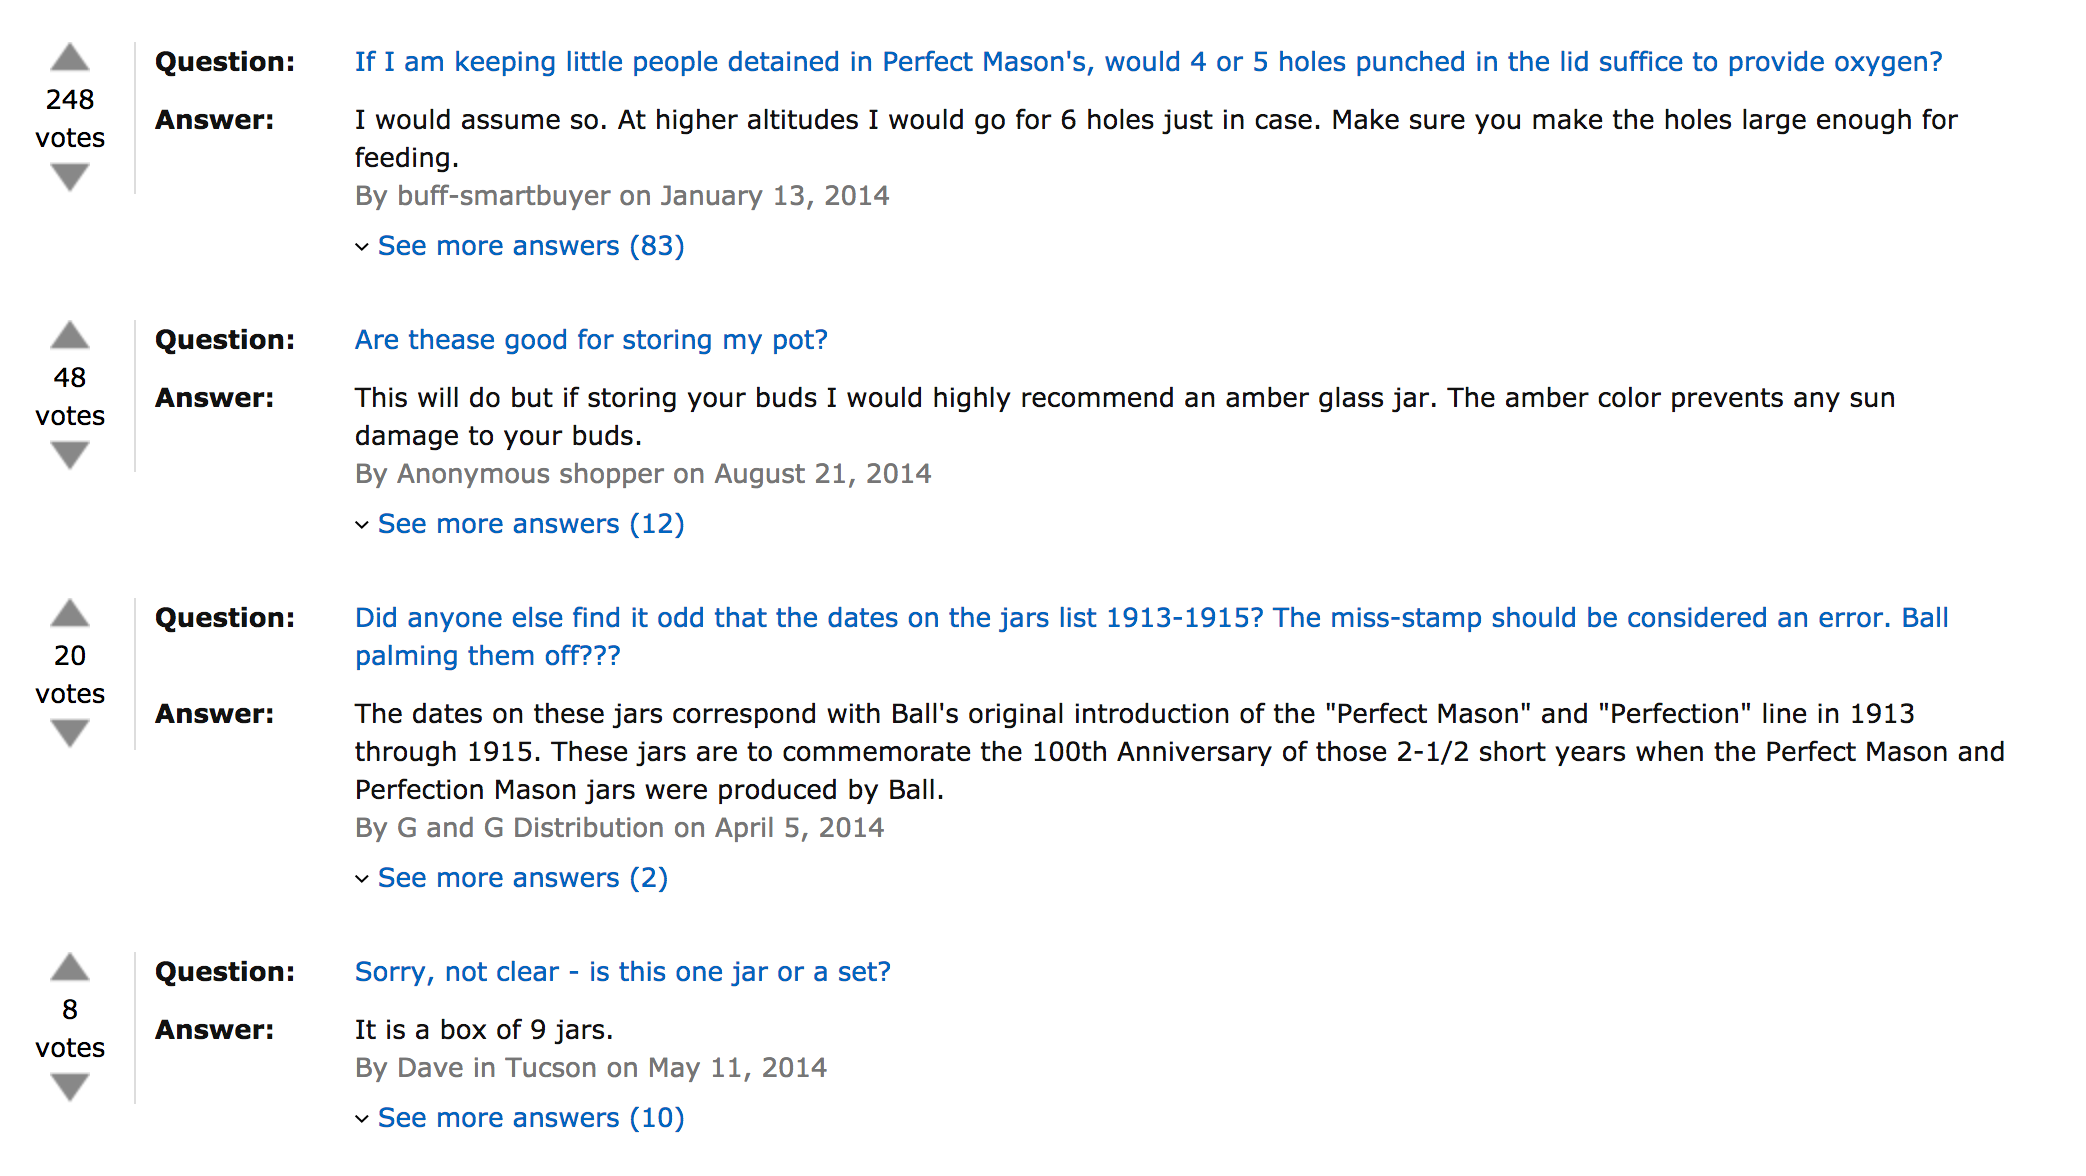 Screenshot shows four questions on an amazon product page about mason's jars. The questions ask about whether holes should be poked in the lids if one is detaining little people in the jars (248 votes), whether the jars are suitable for storing pot (48 votes), whether people find it odd that antiquated dates are stamped on the jars, and whether the product is one jar or a set (it is nine jars).